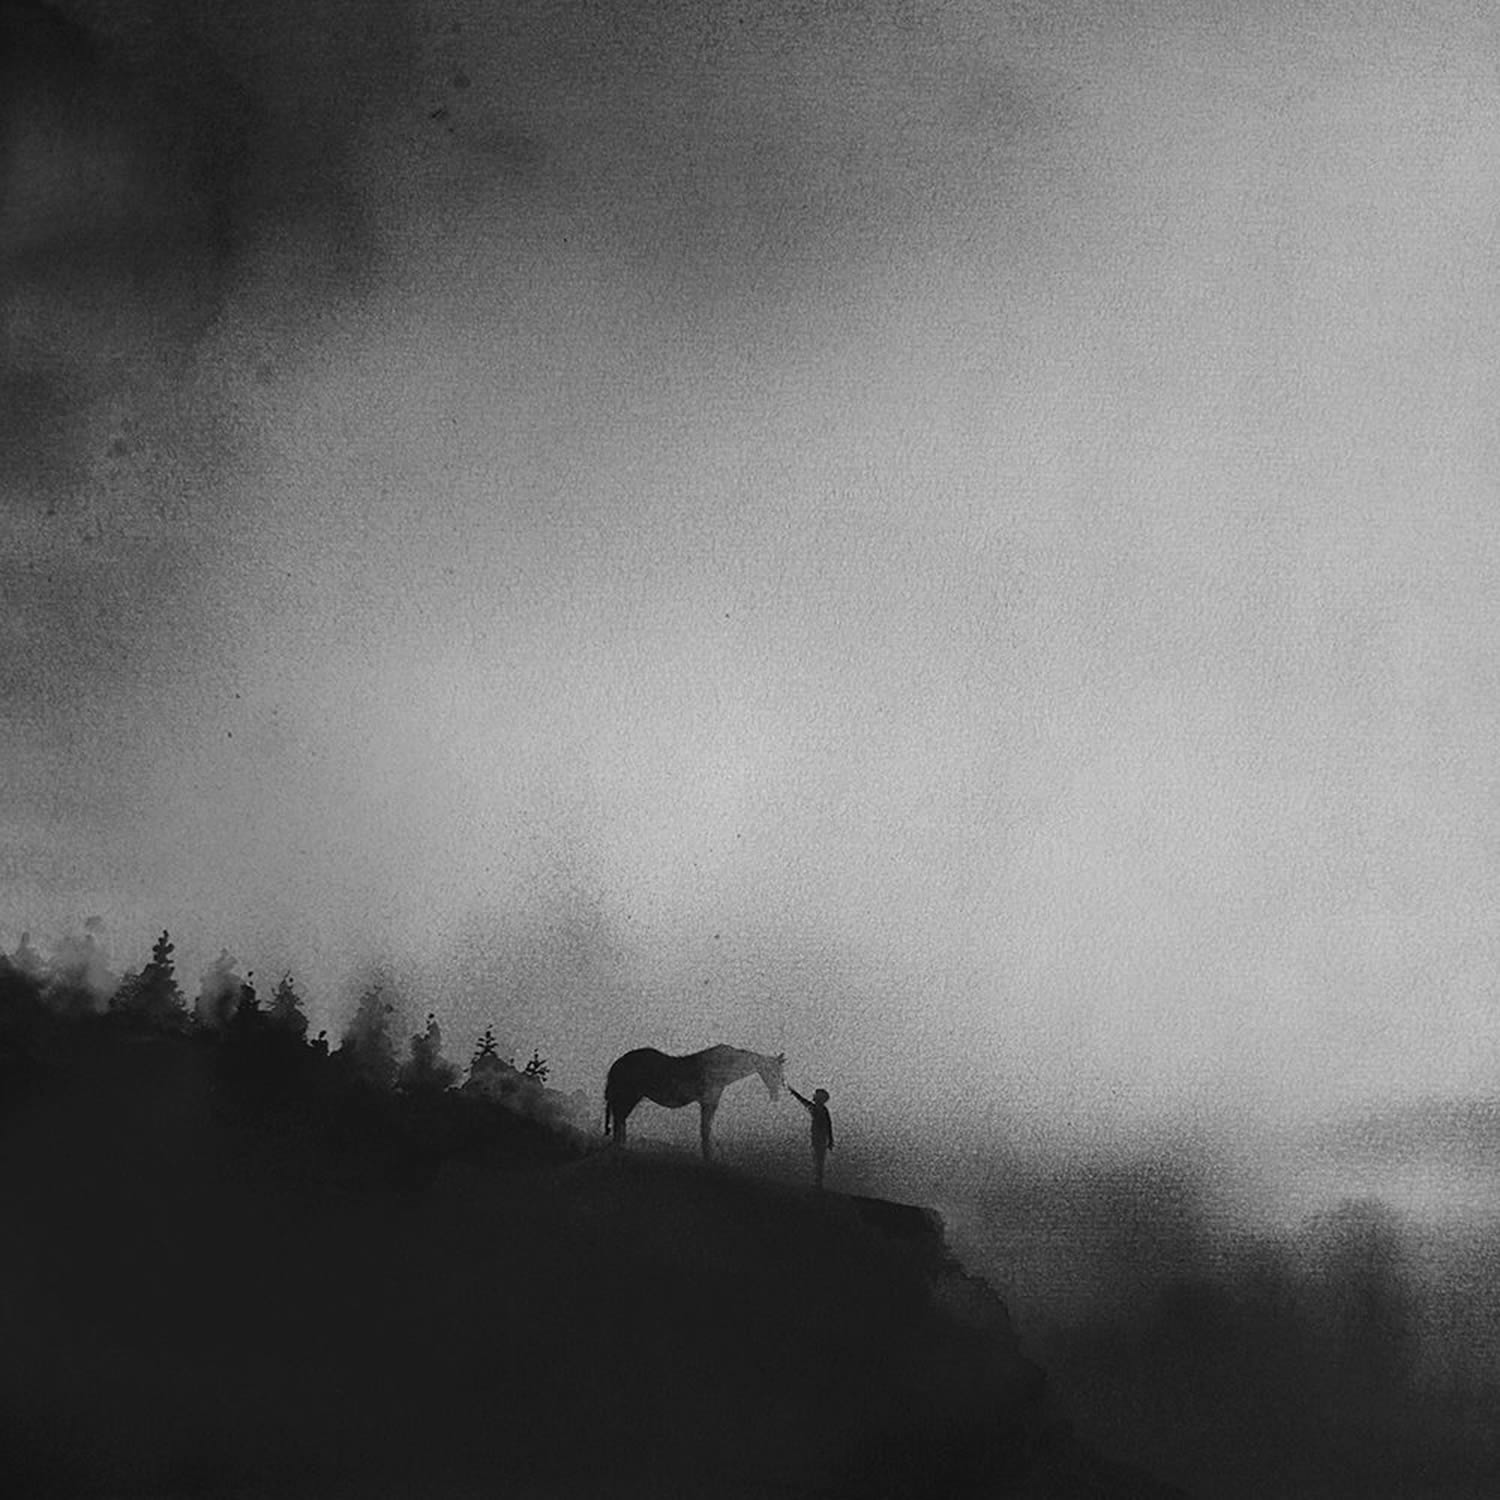 animals in mist, painting